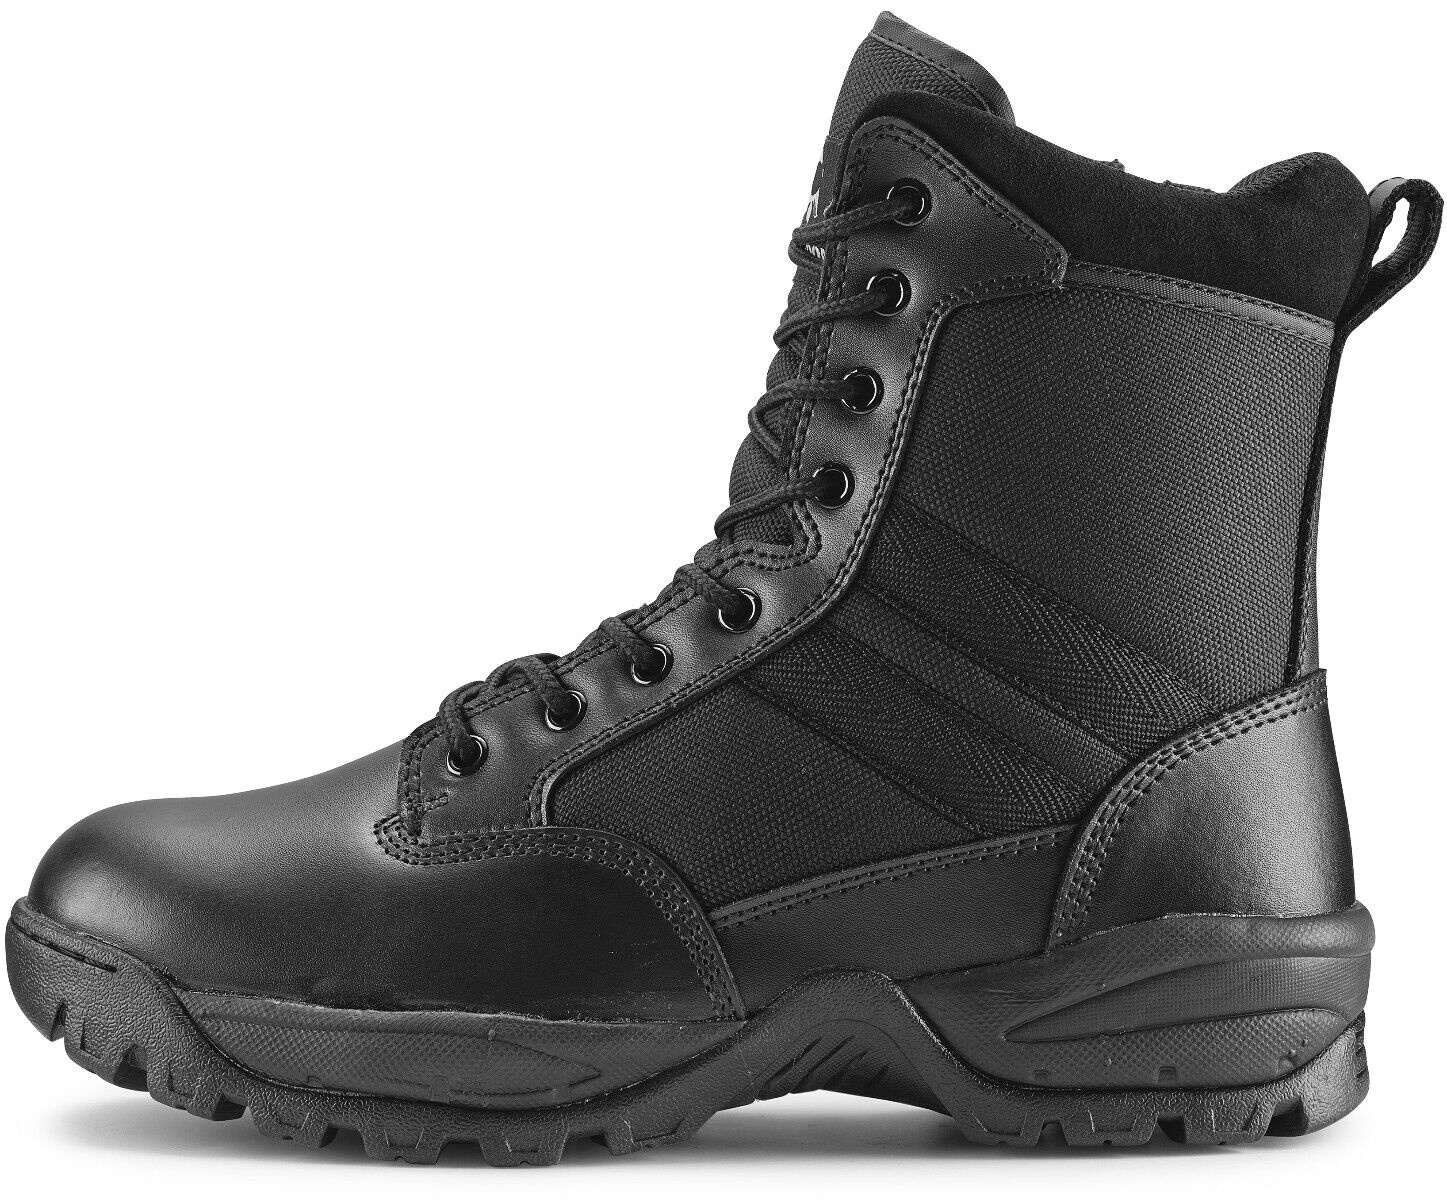 Maelstrom® TAC FORCE Men's 8'' Military Tactical Work Boots with Zipper 1